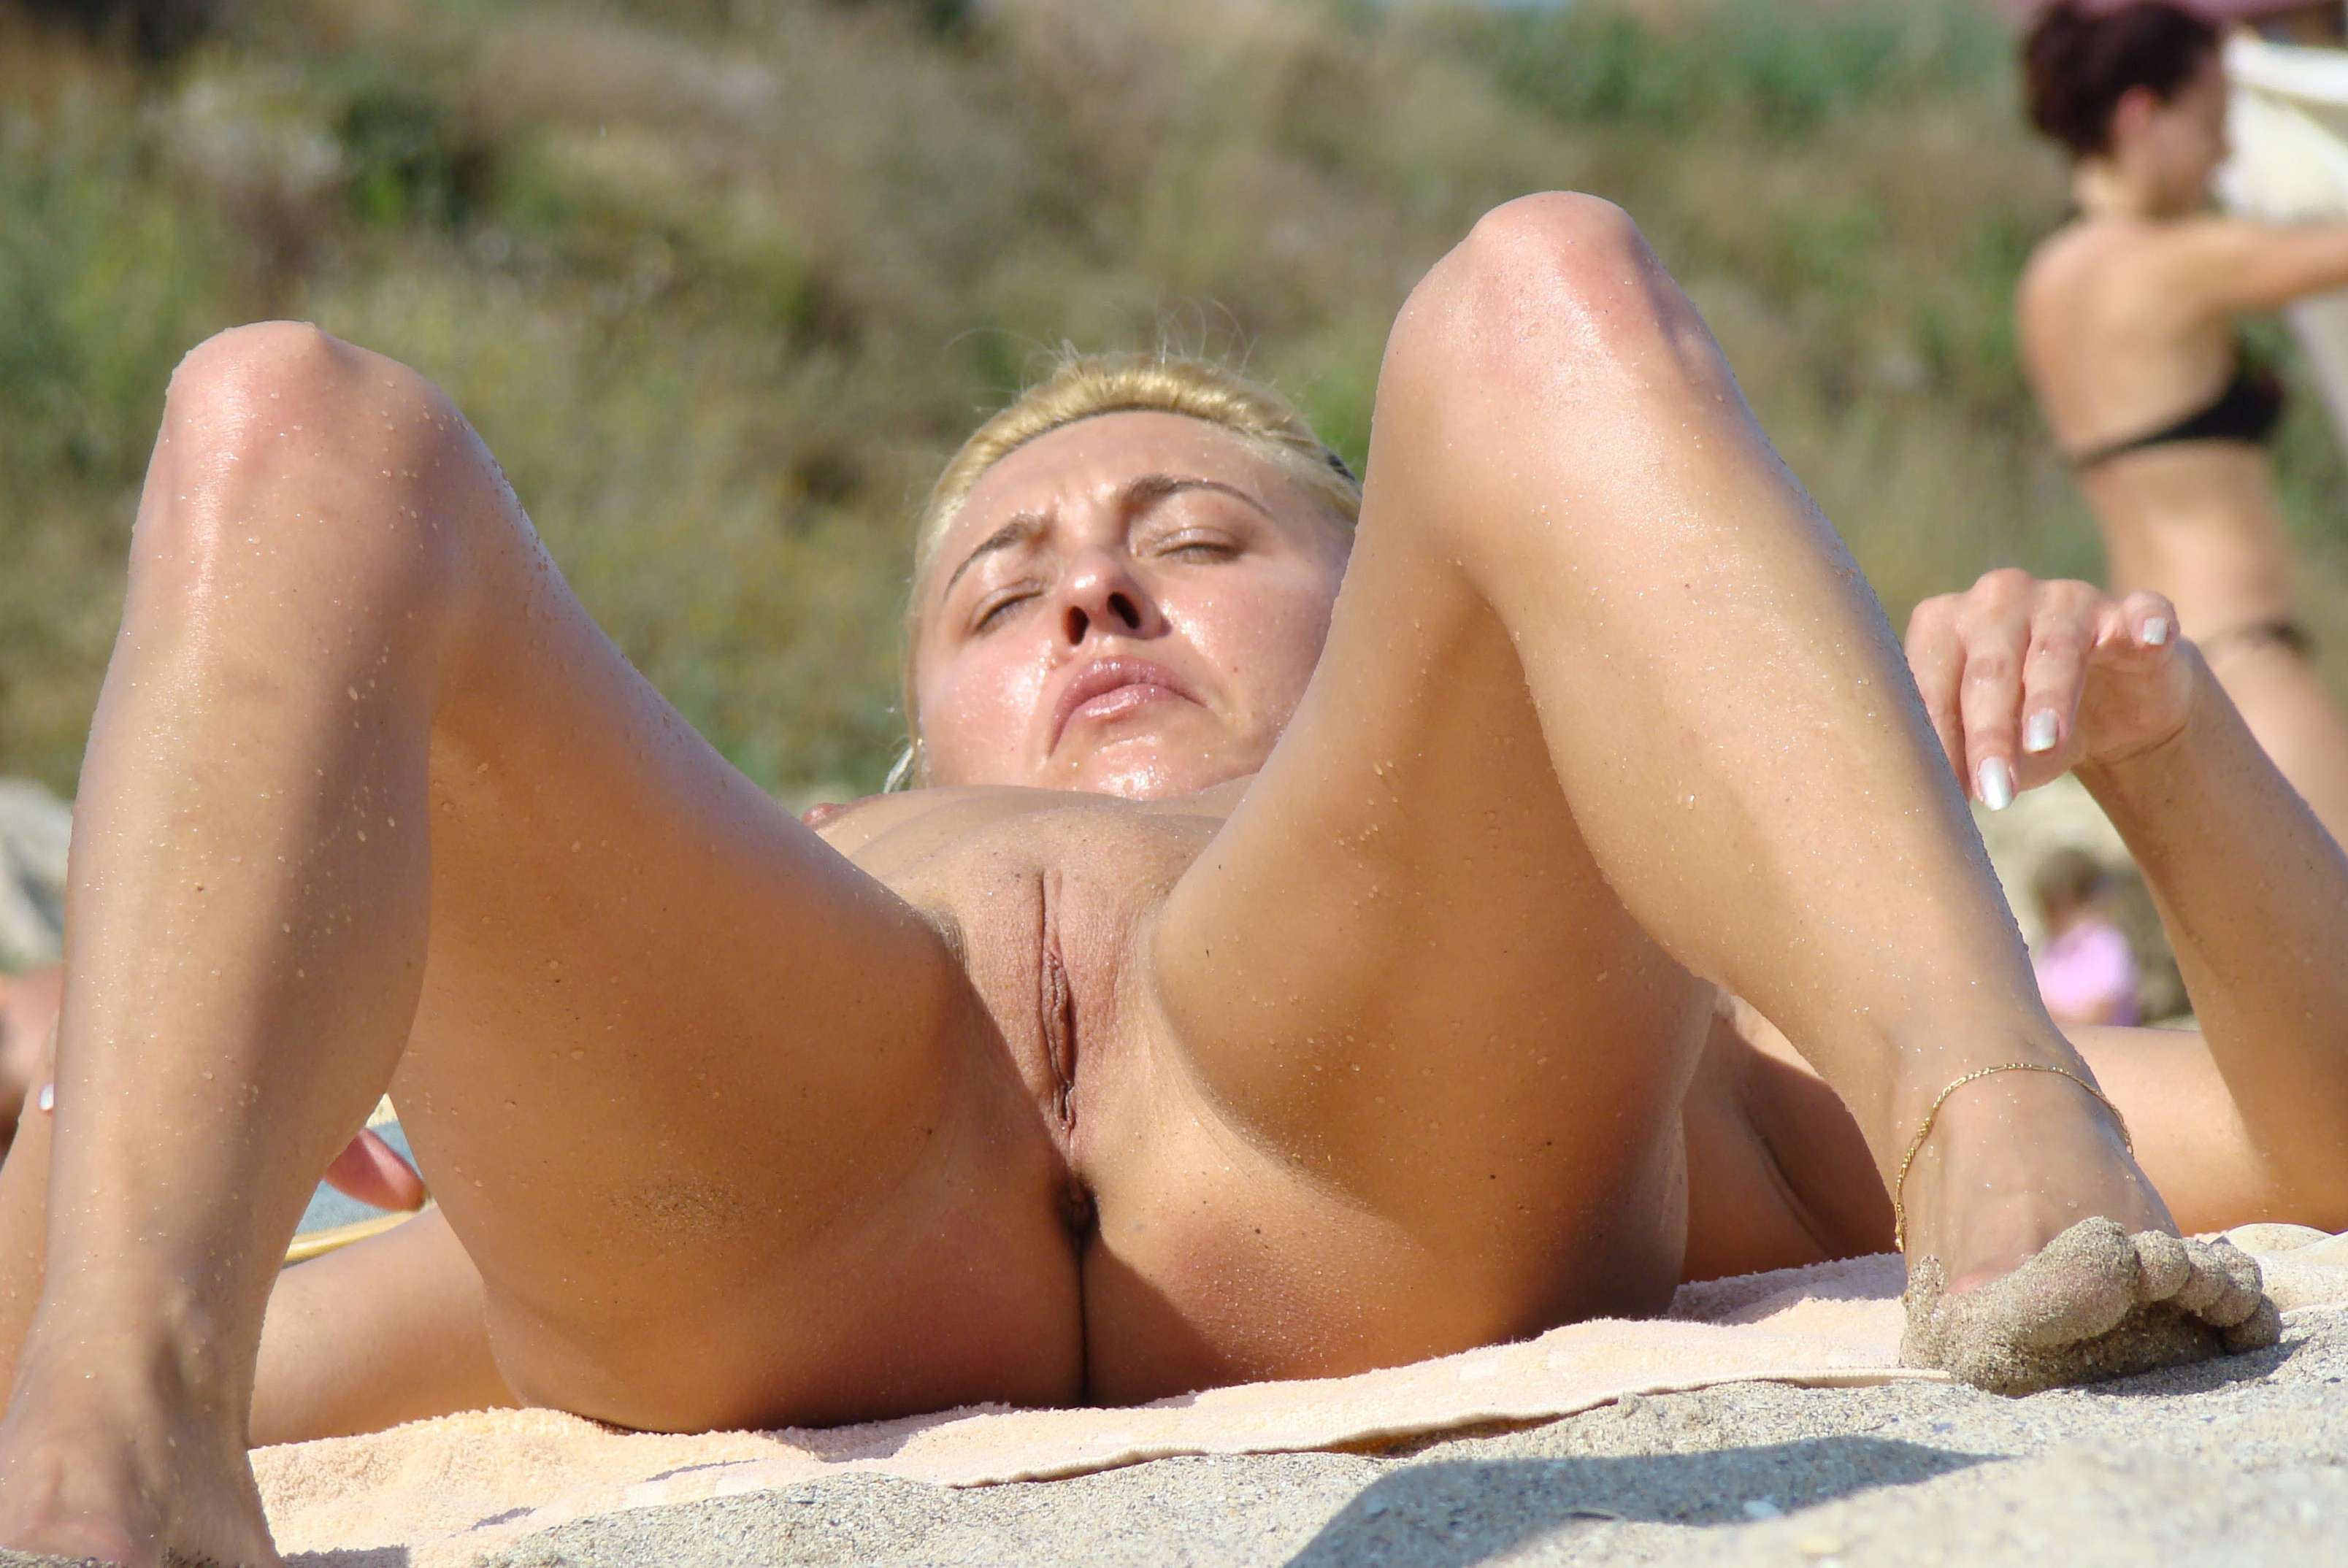 Teen girls nude at beach congratulate, magnificent